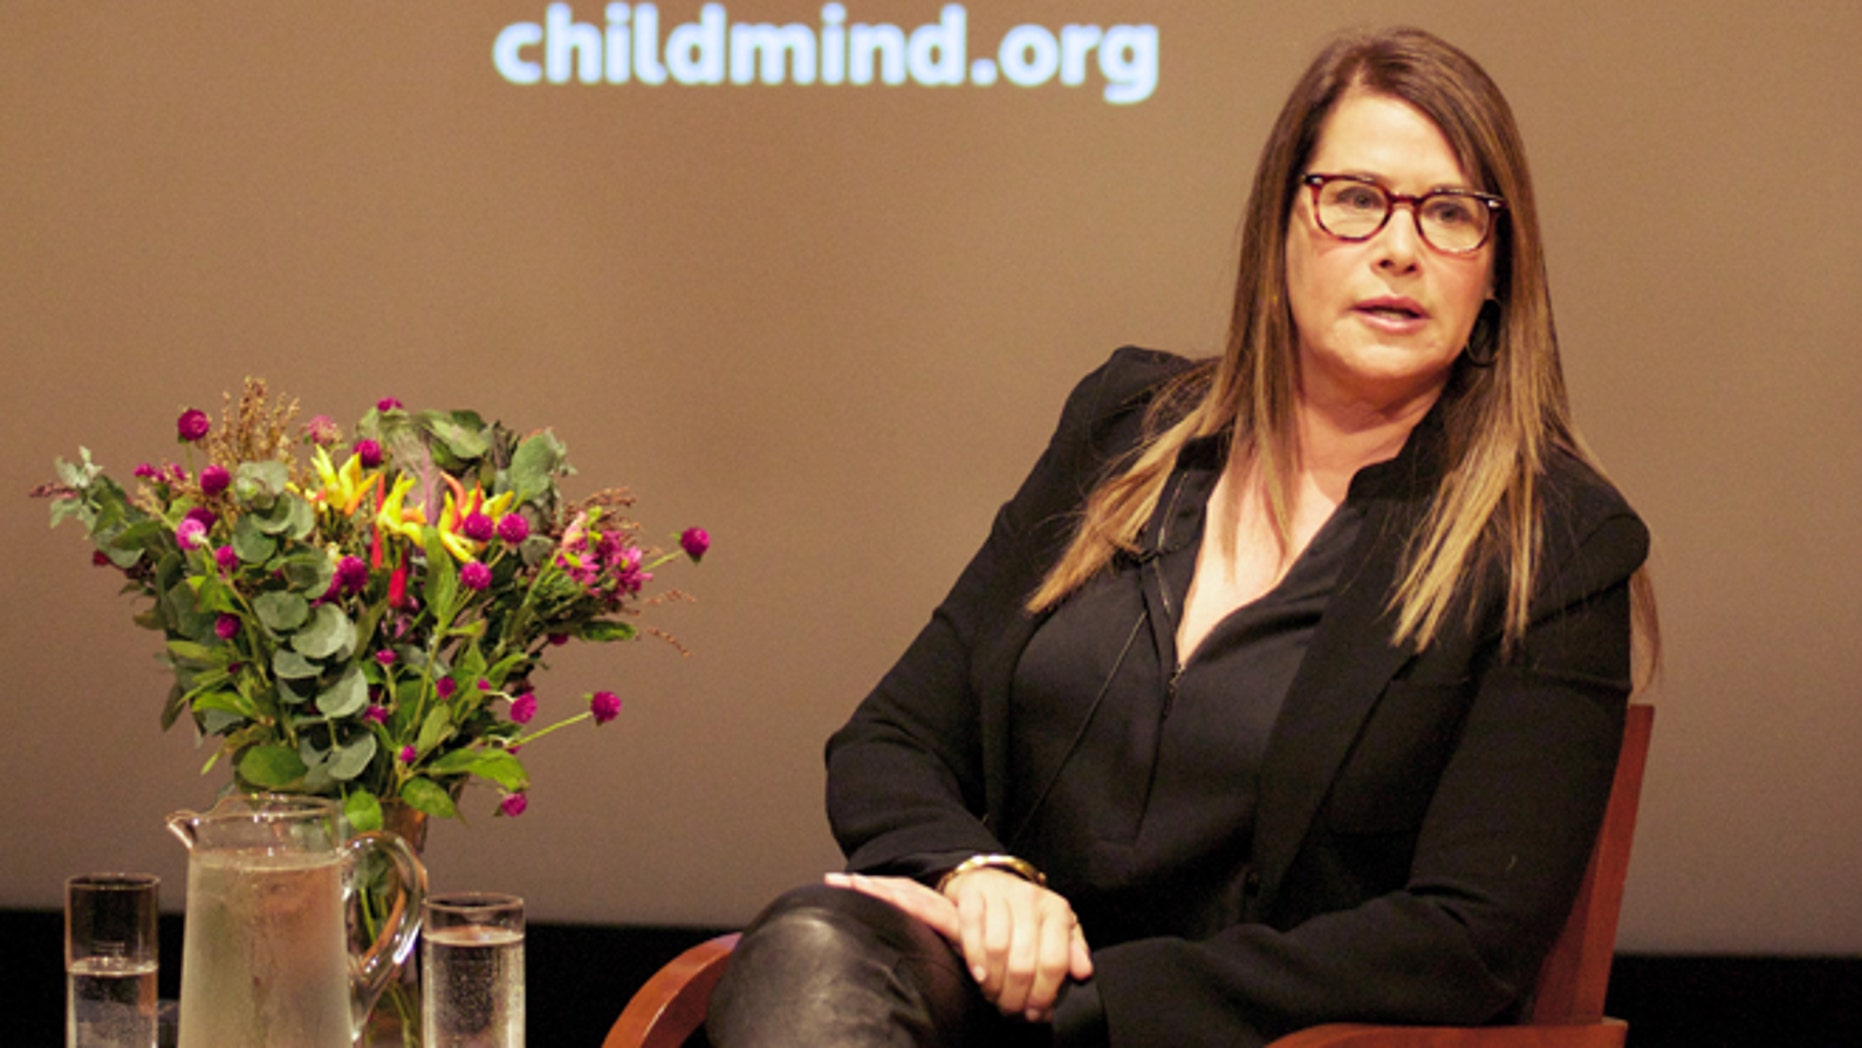 Nov. 6, 2014: Actress Lorraine Bracco opens up about her struggles with depression and dyslexia.